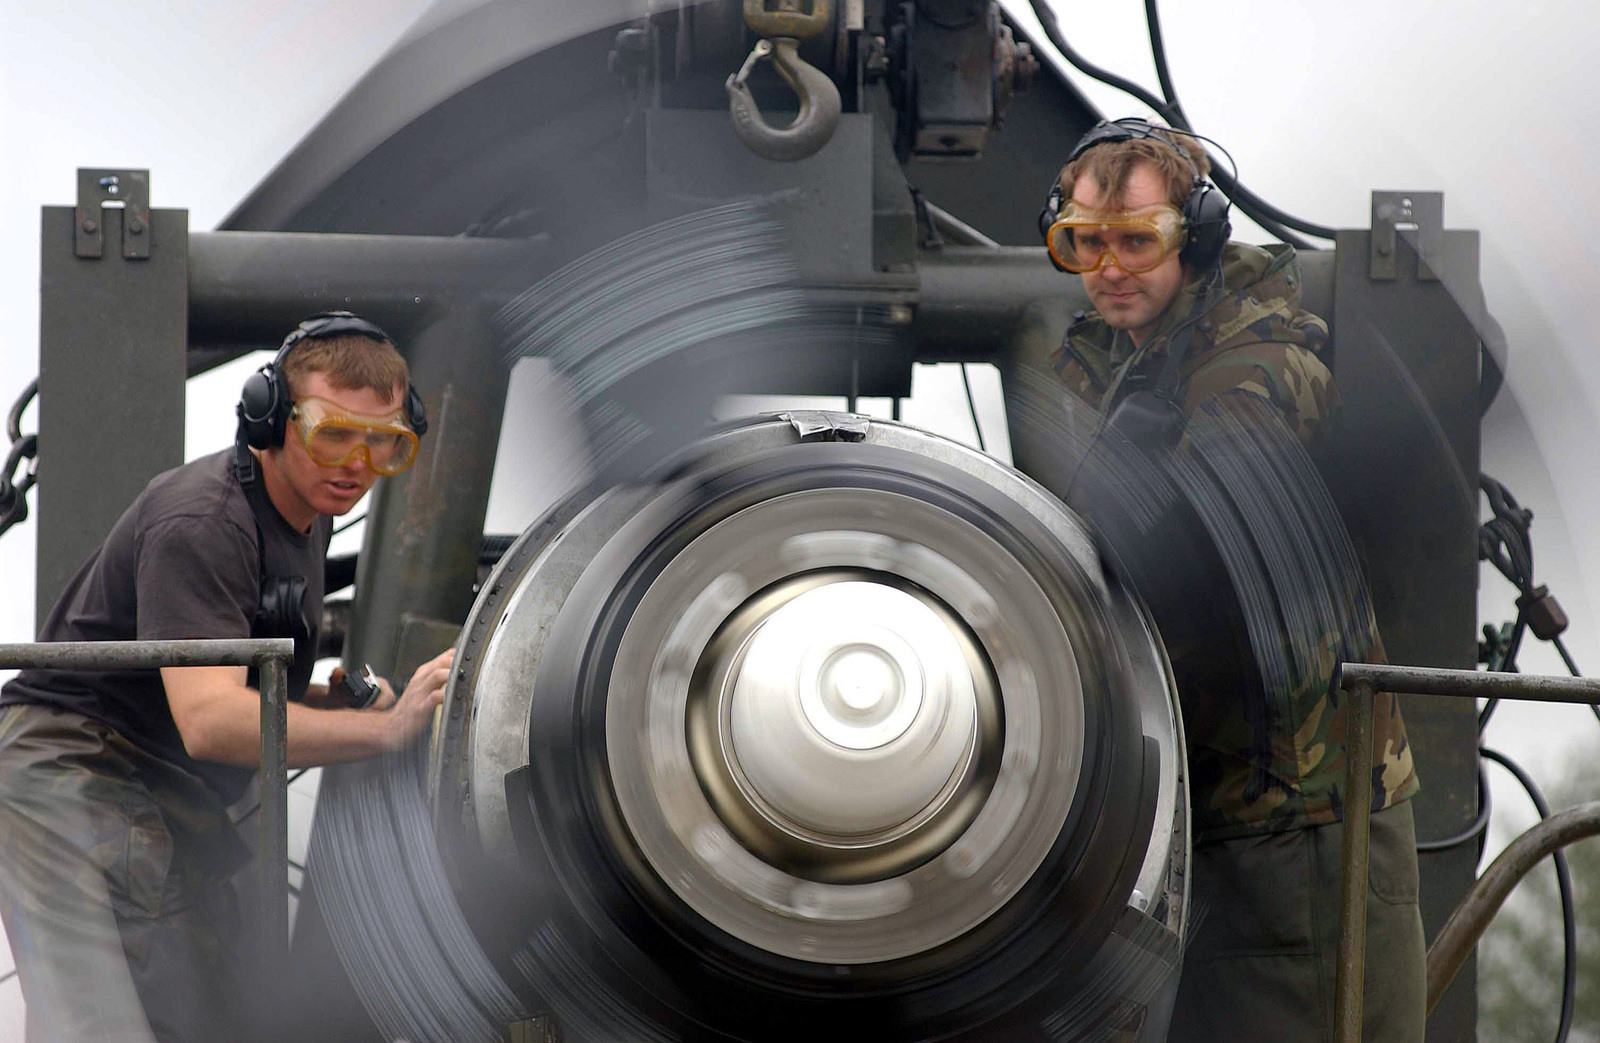 US Air Force (USAF) SENIOR AIRMAN (SRA) James Bolstad (left) and USAF STAFF Sergeant (SSGT) James McNee, both assigned to the 86th Maintenance Squadron (MXS), conduct visual operation checks during an aircraft engine run up, being conducted at Ramstein Air Base (AB), Germany